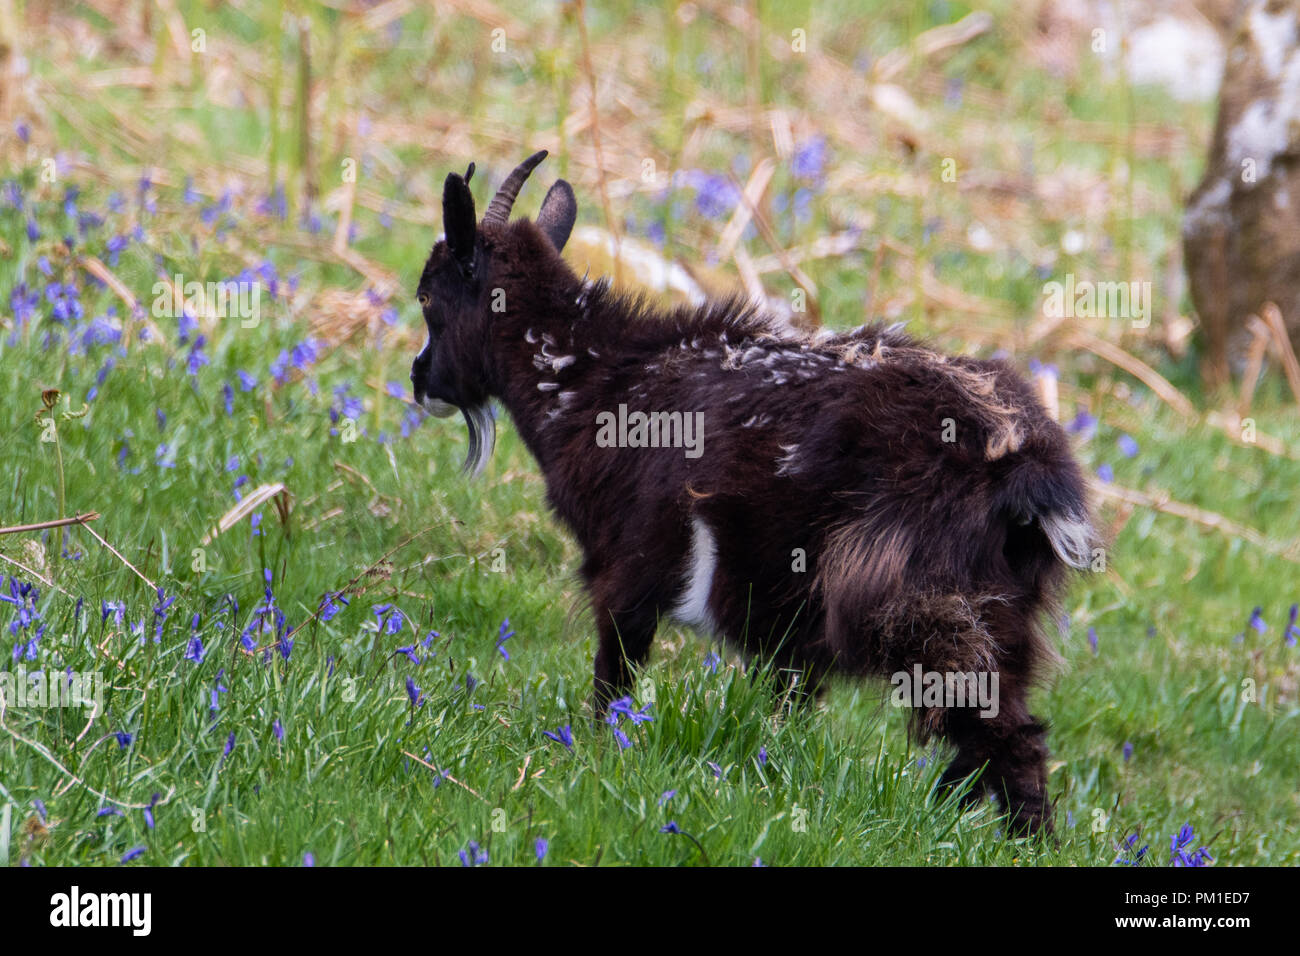 A young goat climbs onto a moss covered rock in Southern Scotland. - Stock Image